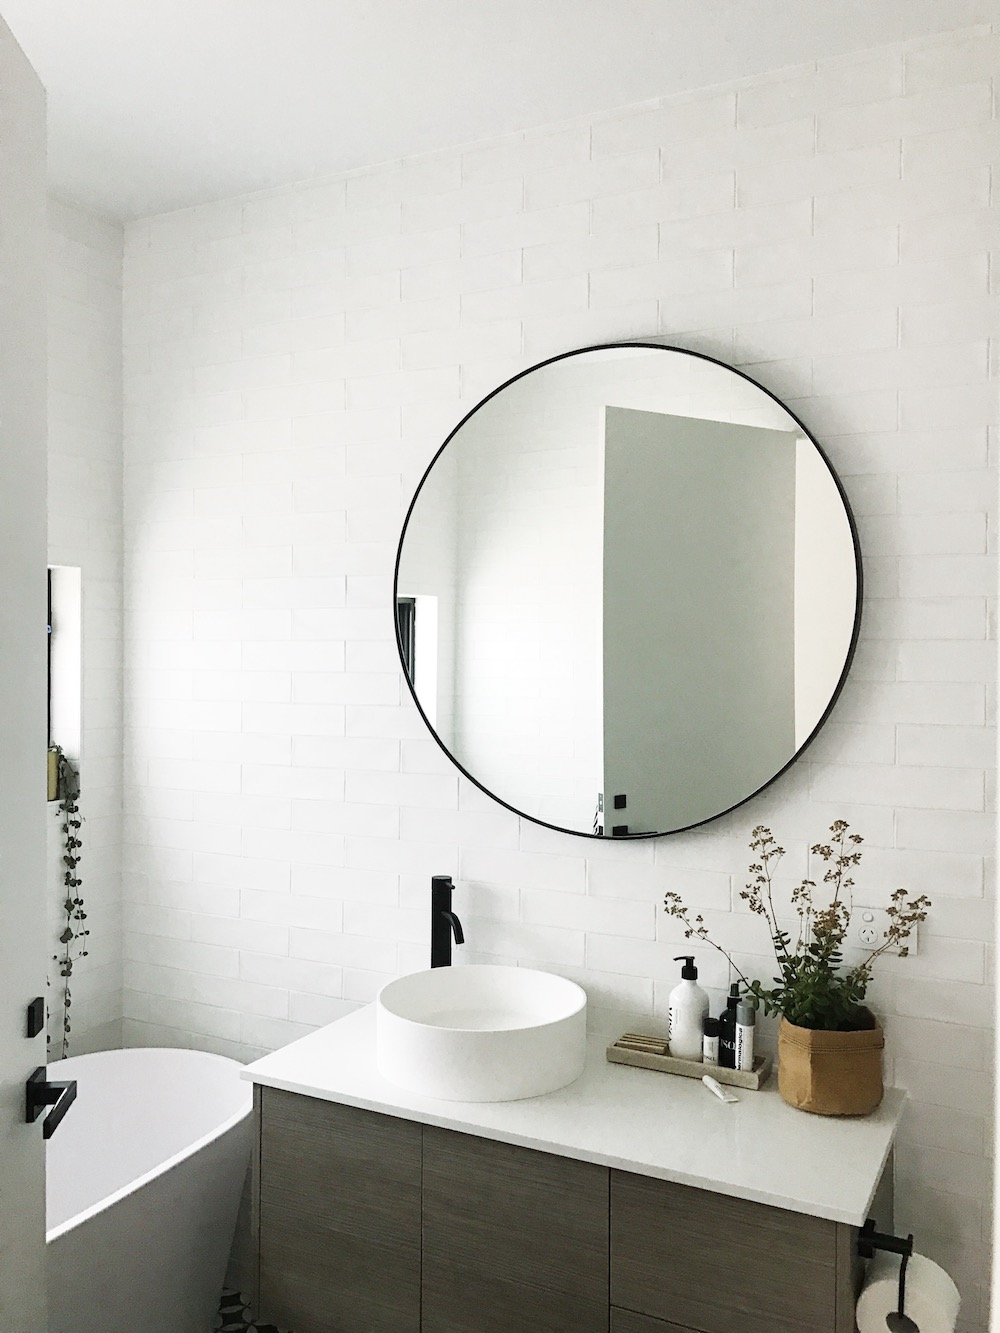 Gina S Home Black And White Bathroom Reveal Style Curator